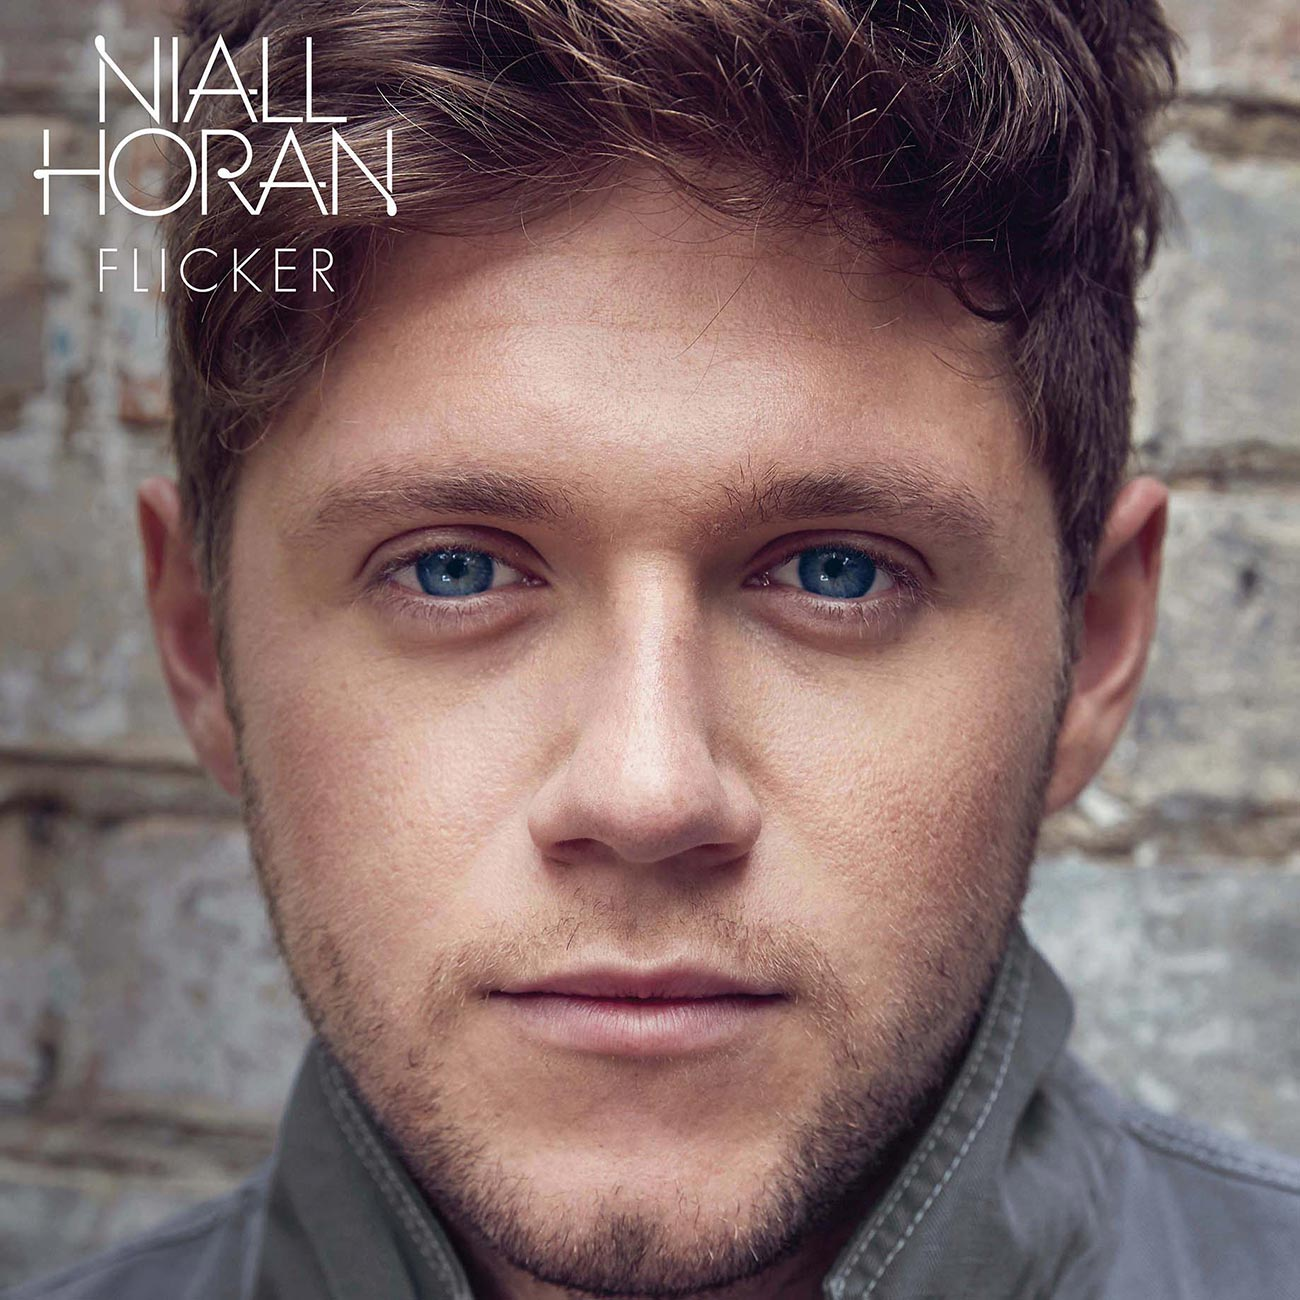 NIALL HORAN FLICKER ALBUM ART